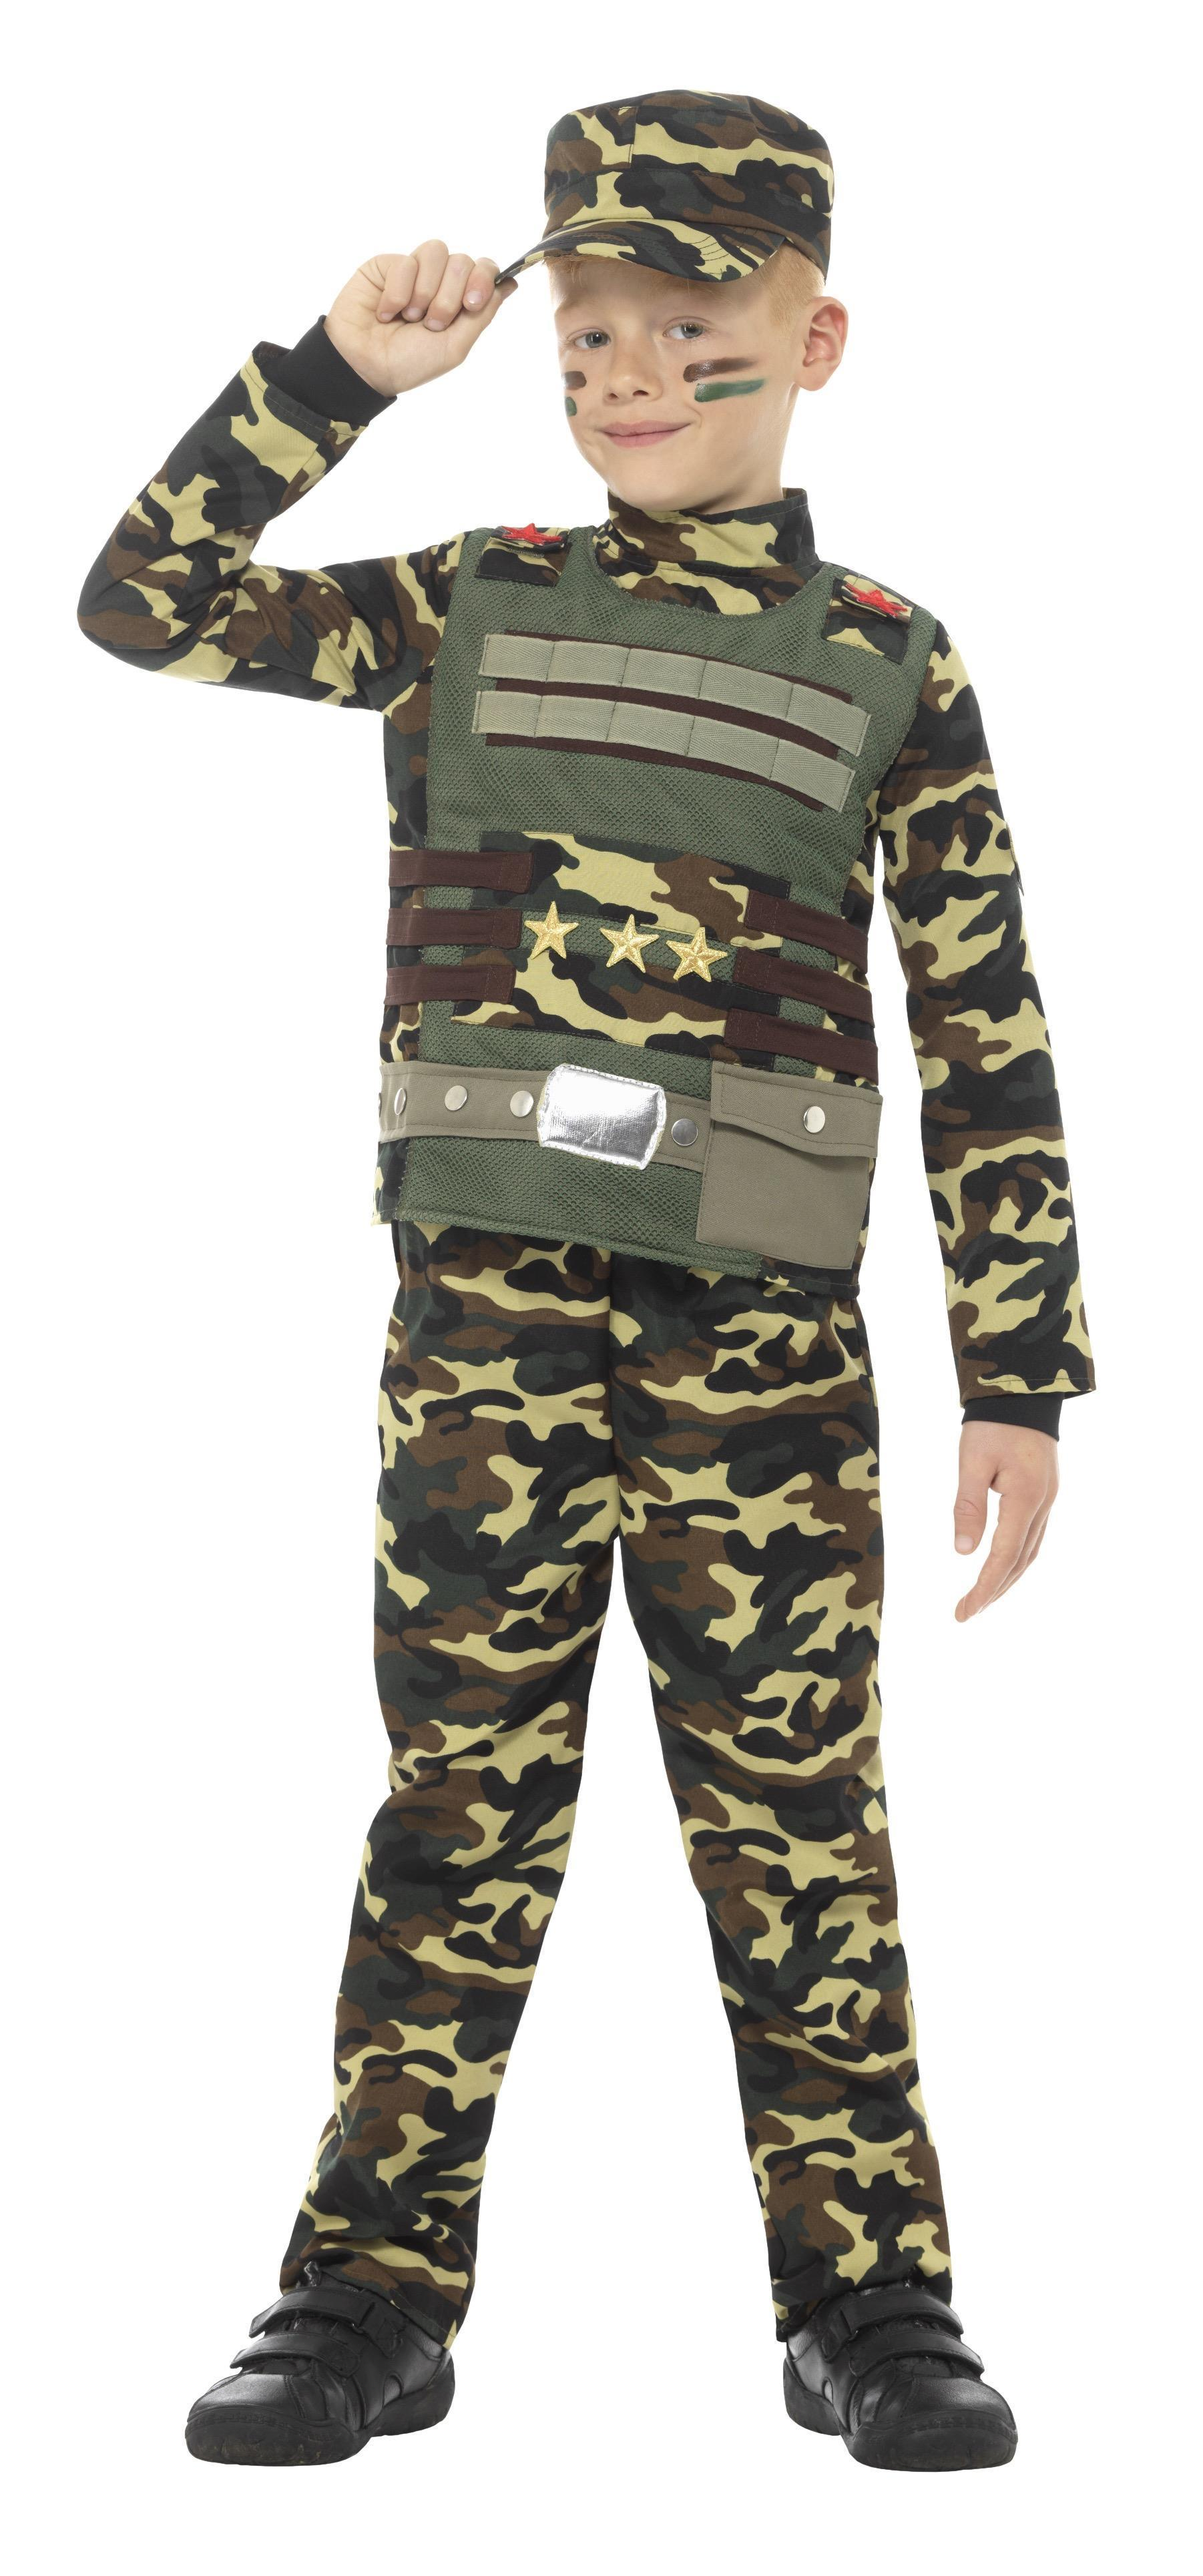 Kids Camouflage Military Boy Costume